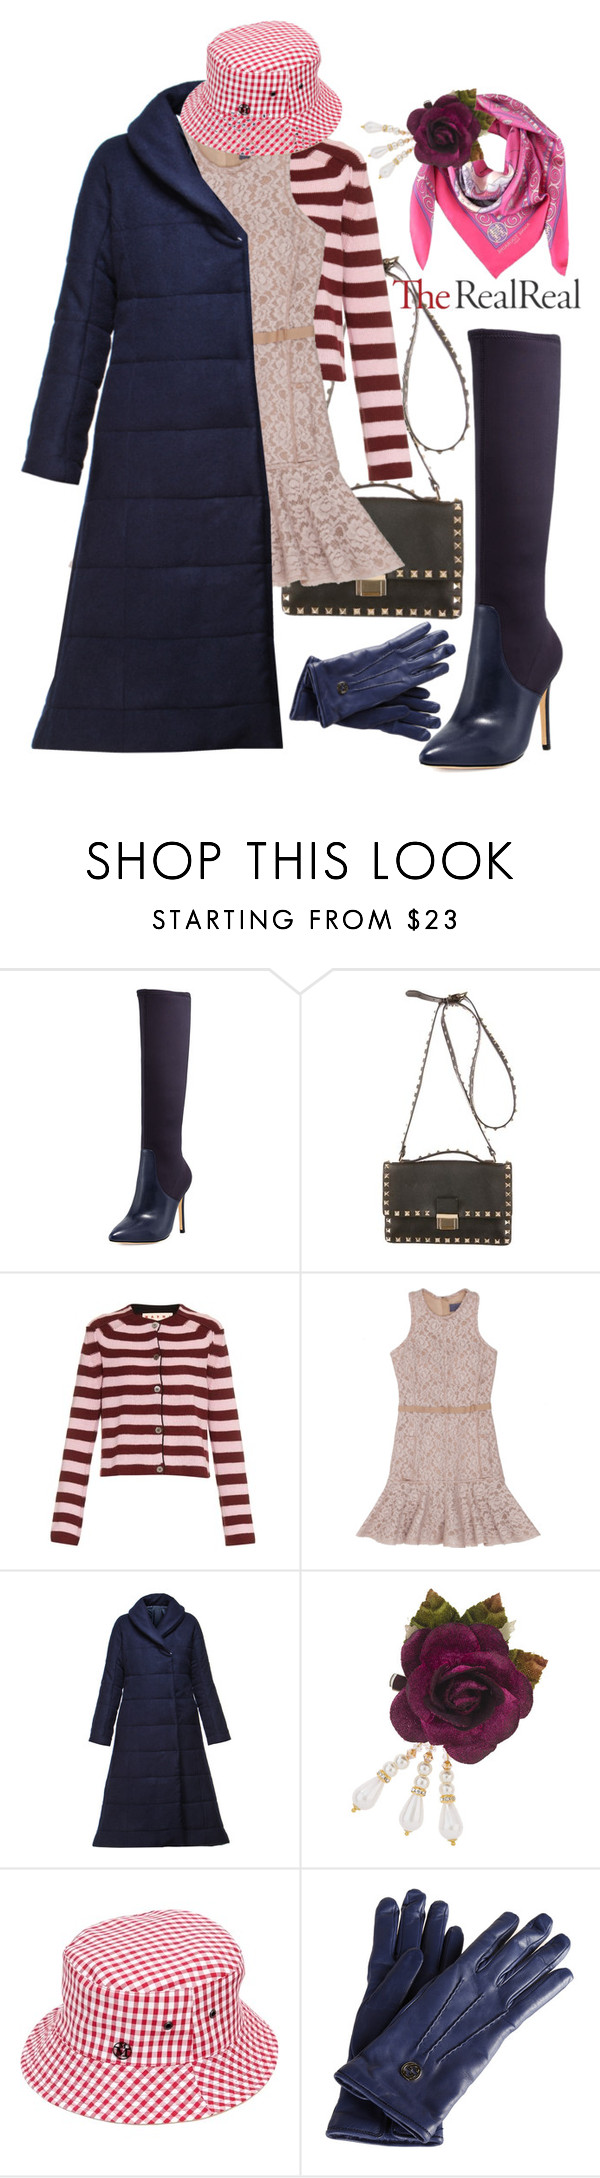 """Holiday Sparkle With The RealReal: Contest Entry"" by ul-inn ❤ liked on Polyvore featuring Halston Heritage, Valentino, Marni, Lanvin, N-DUO-CONCEPT, Topshop, Maison Michel and Gucci"